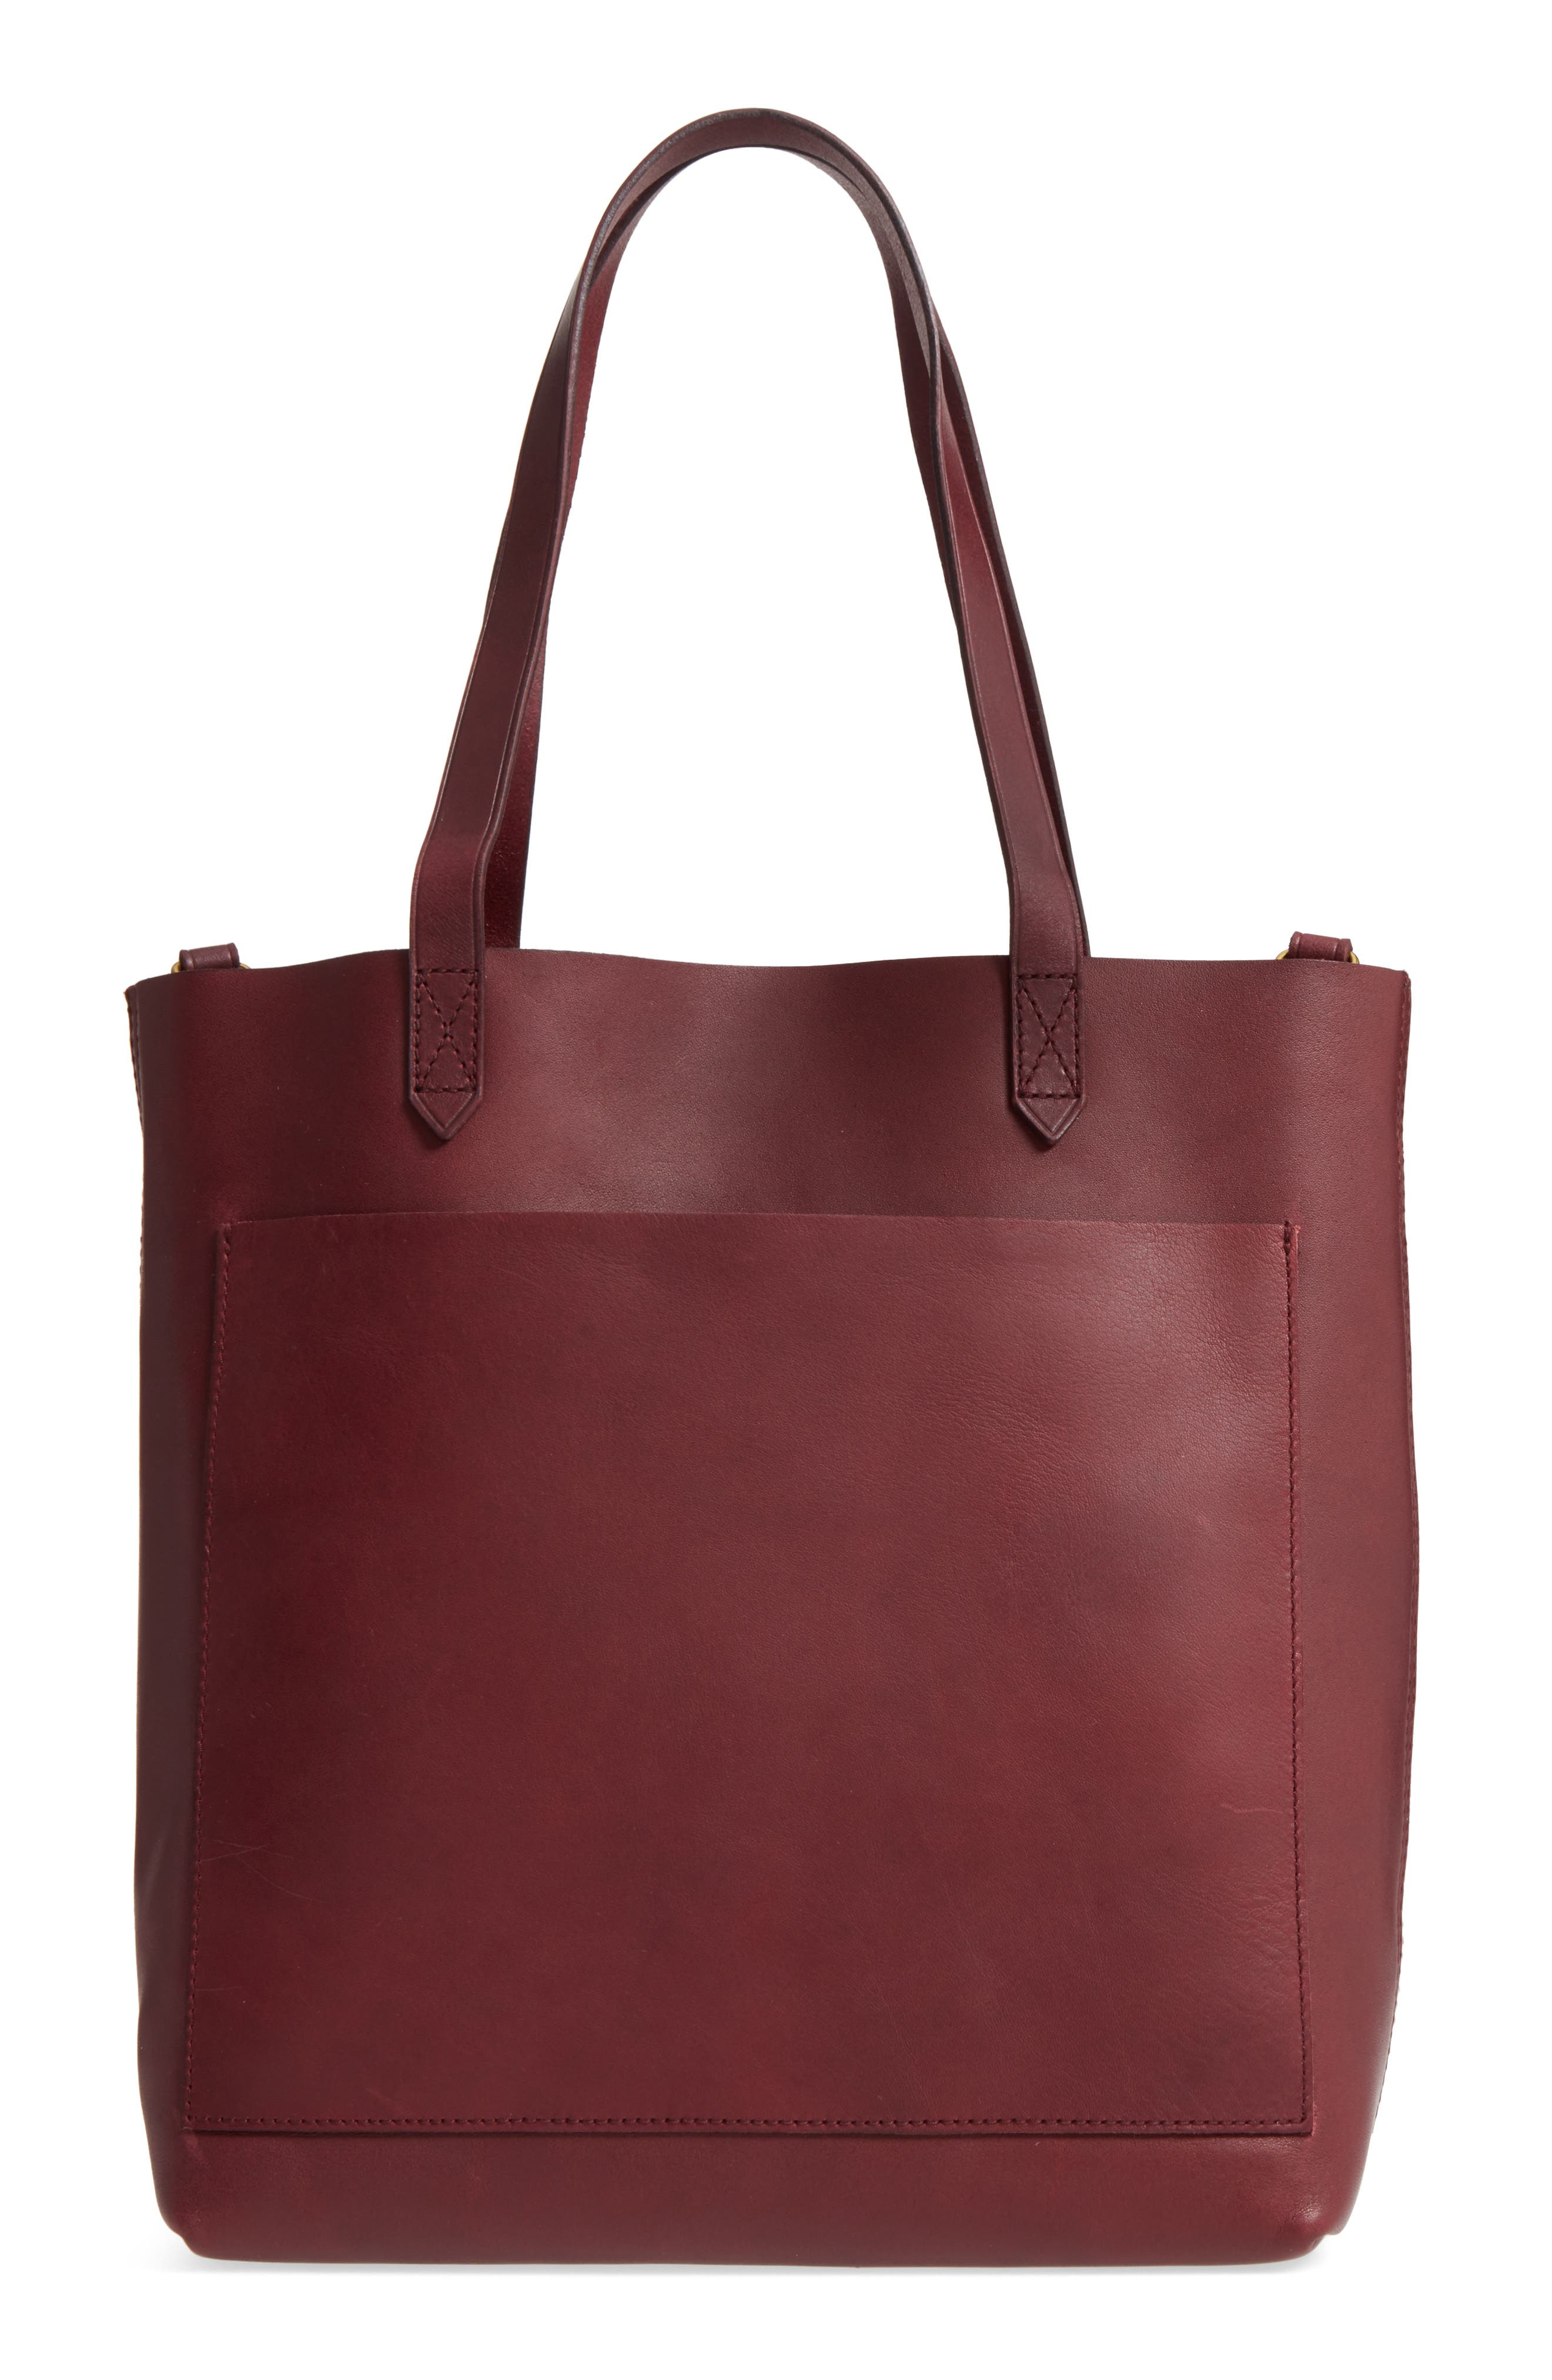 Medium Leather Transport Tote,                             Main thumbnail 11, color,